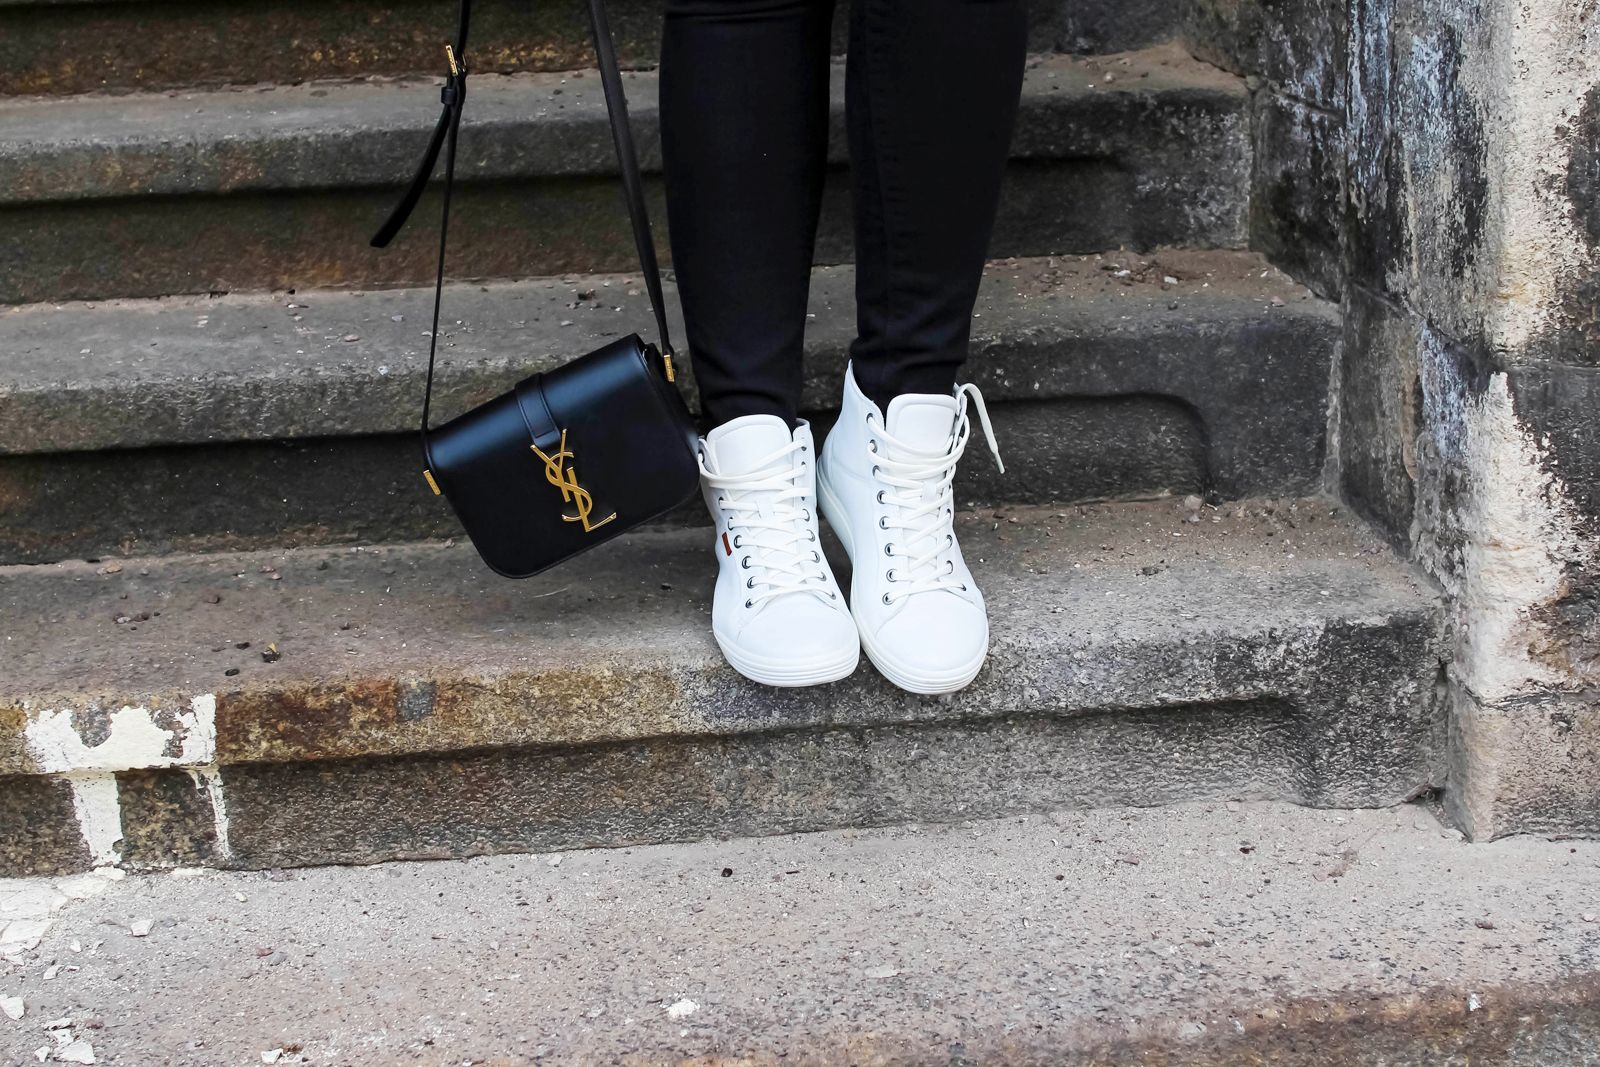 I'm a Sporty Girl in Ecco Shoes